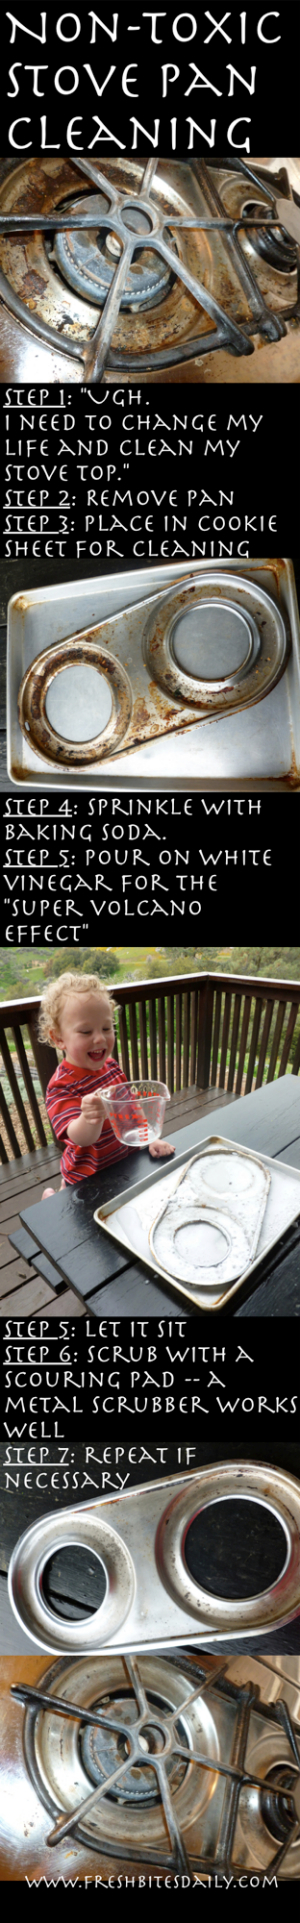 A non-toxic (and fun) way to clean your stove top